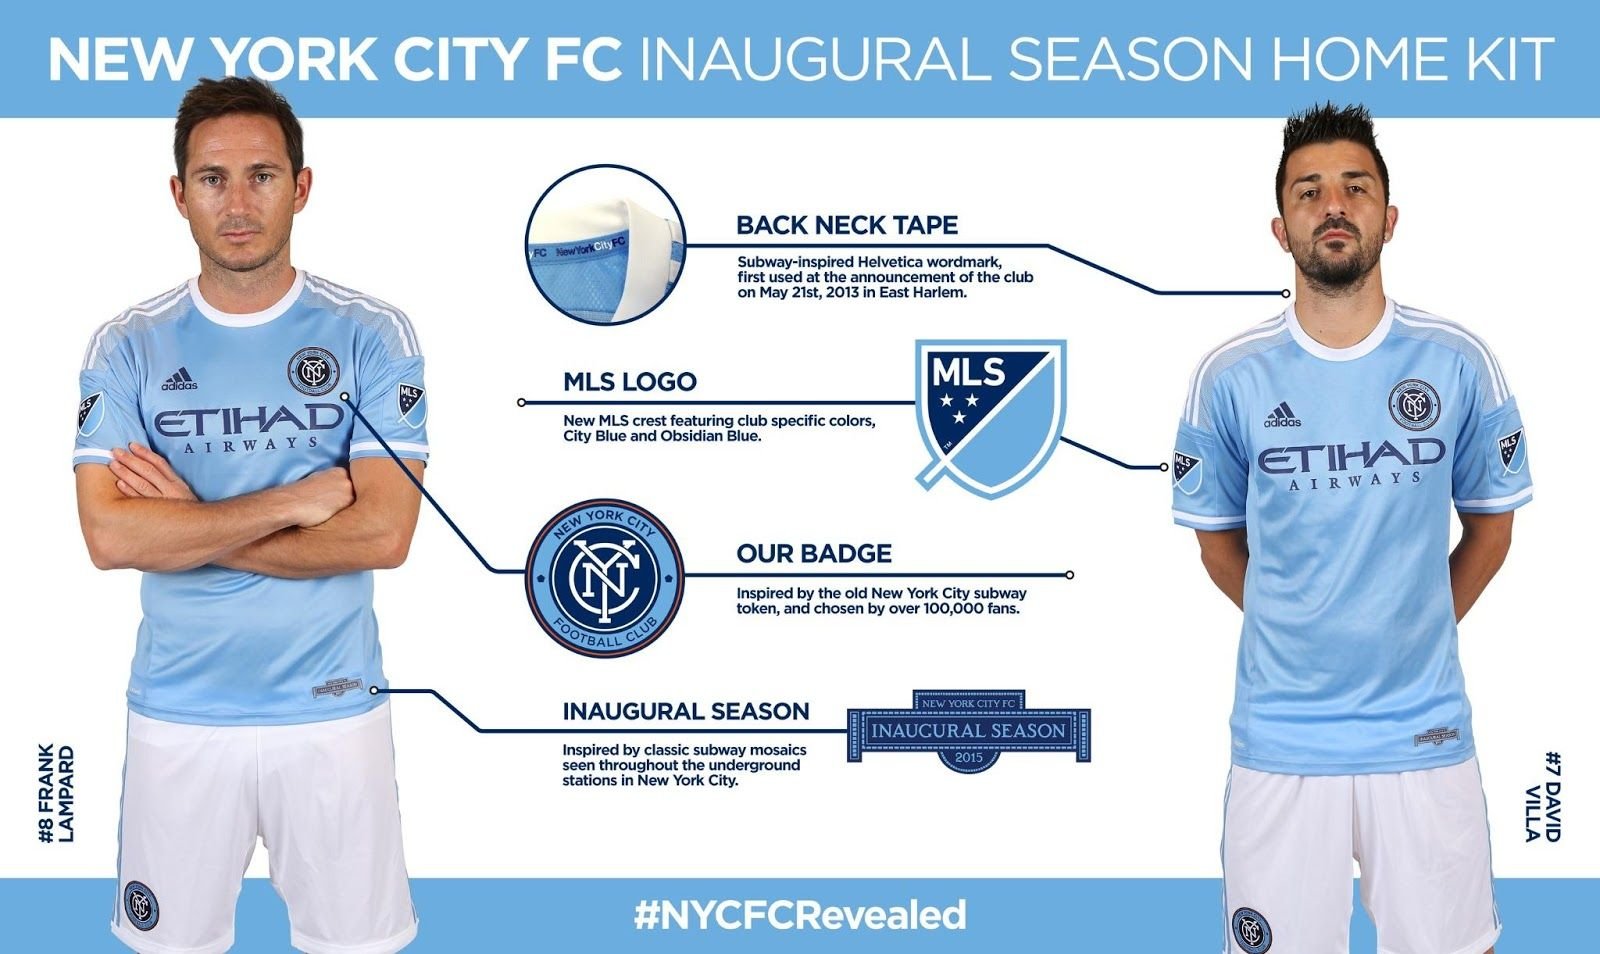 dfdda45e189 New York City FC 2015 MLS Home and Away Kits Released - Footy Headlines